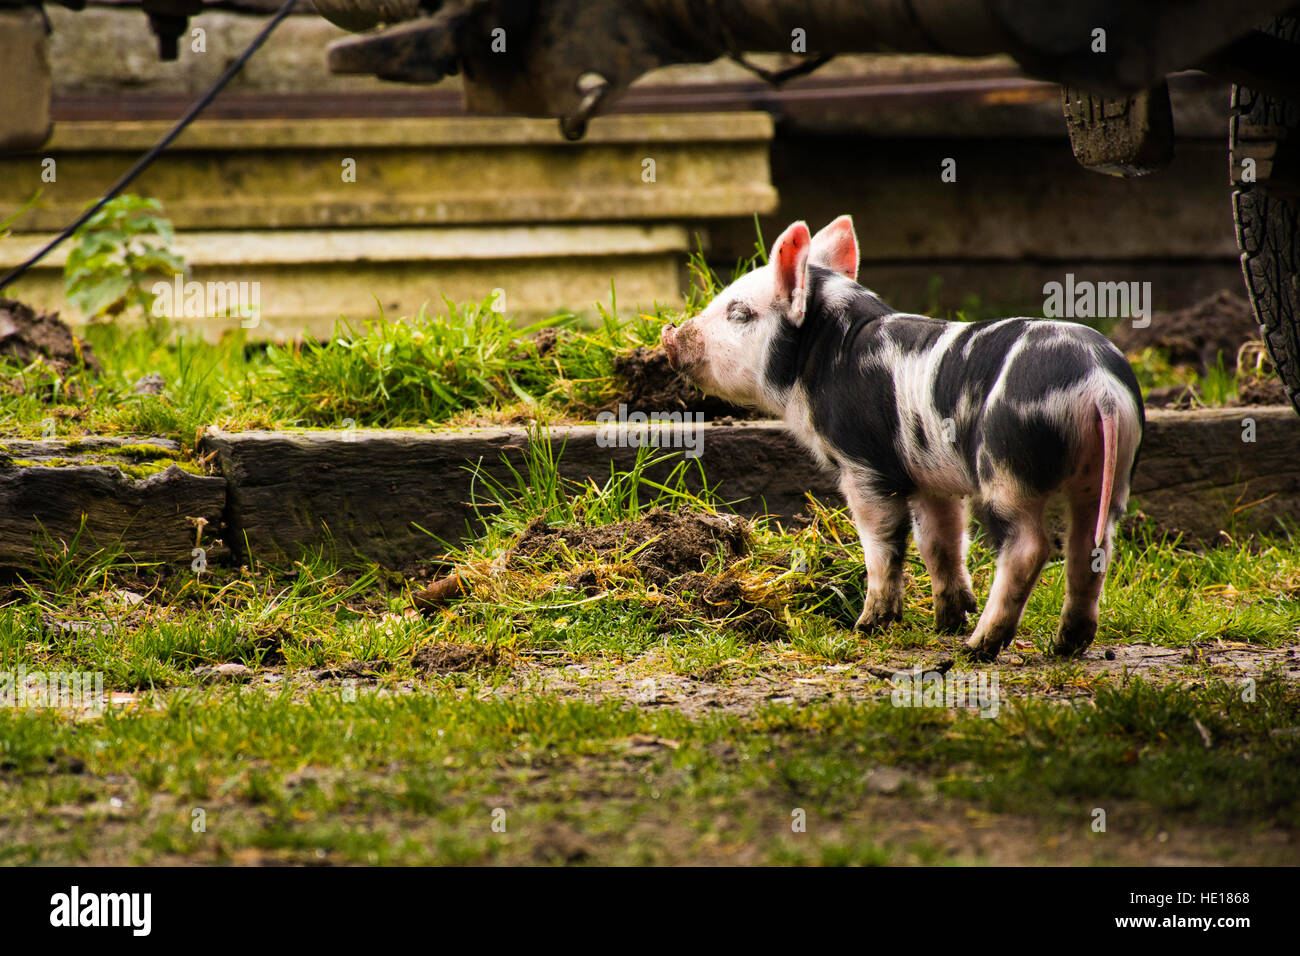 and this little piggy... Stock Photo